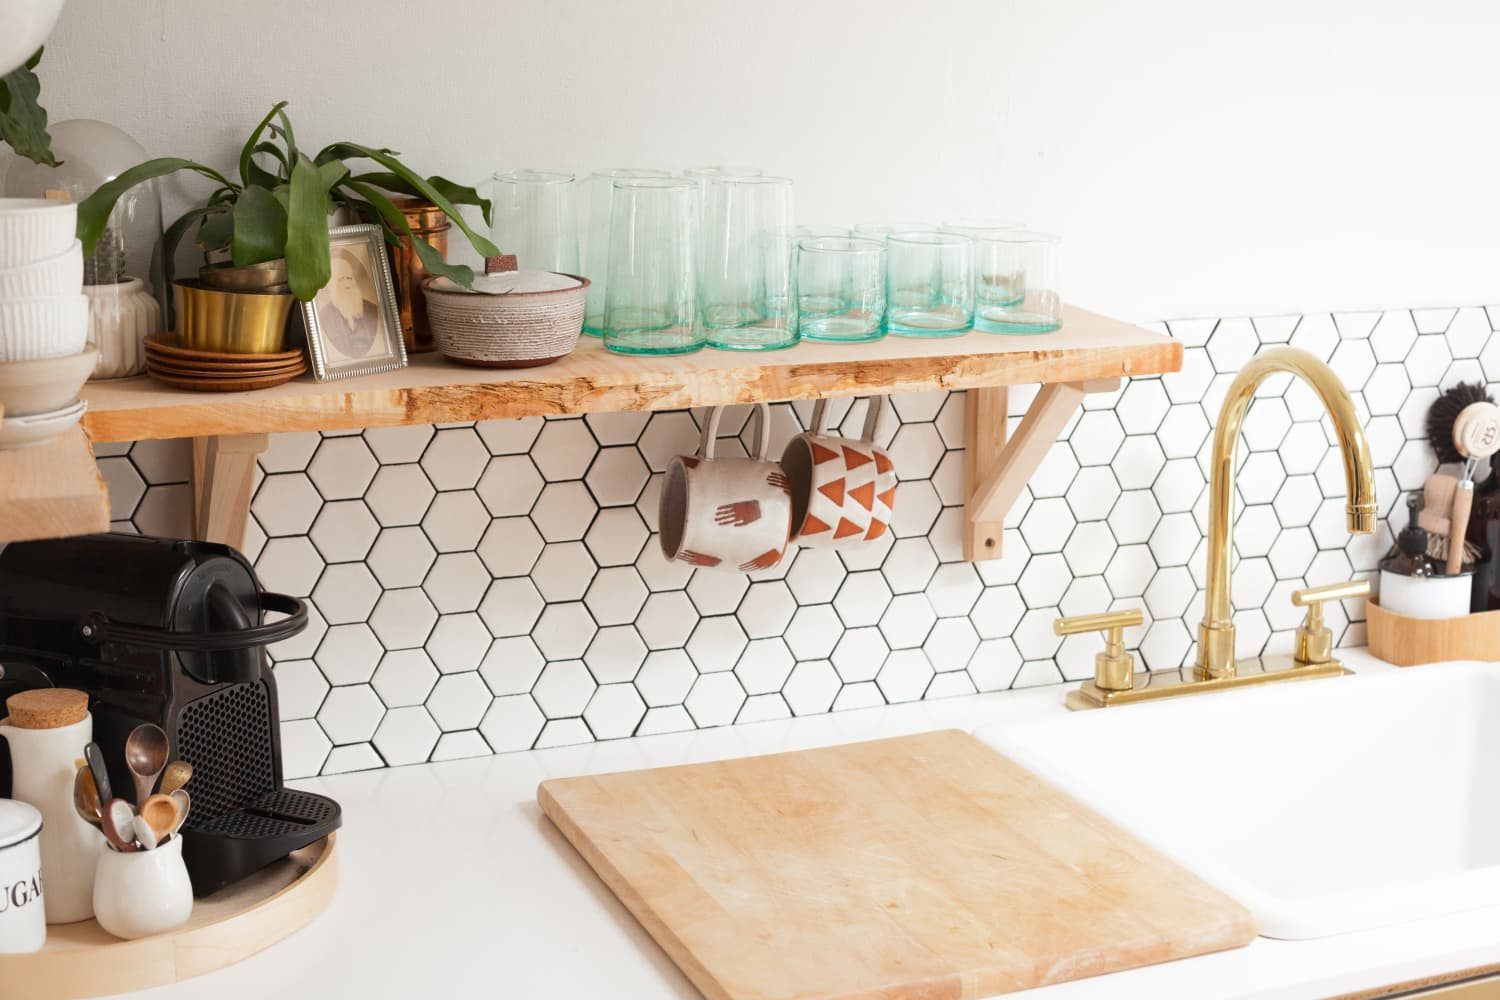 6 Overlooked Places to Hang Hooks in Your Kitchen